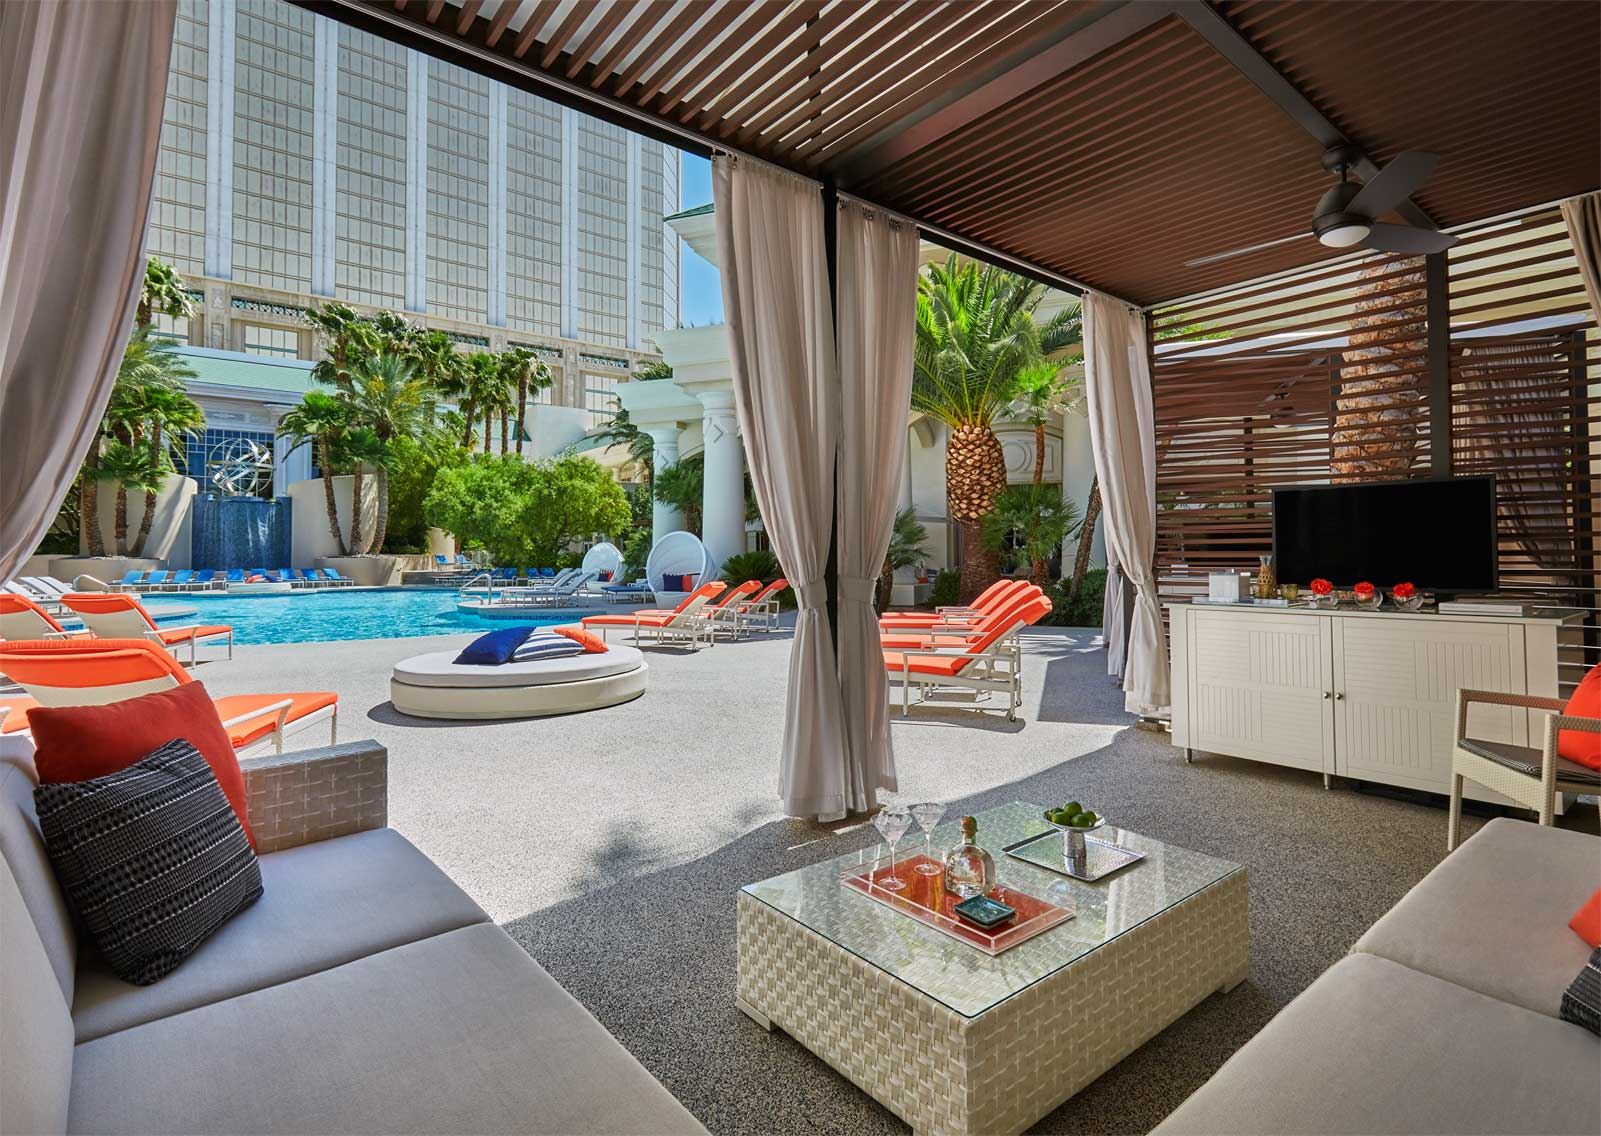 Pool Cabana at the Four Seasons Las Vegas